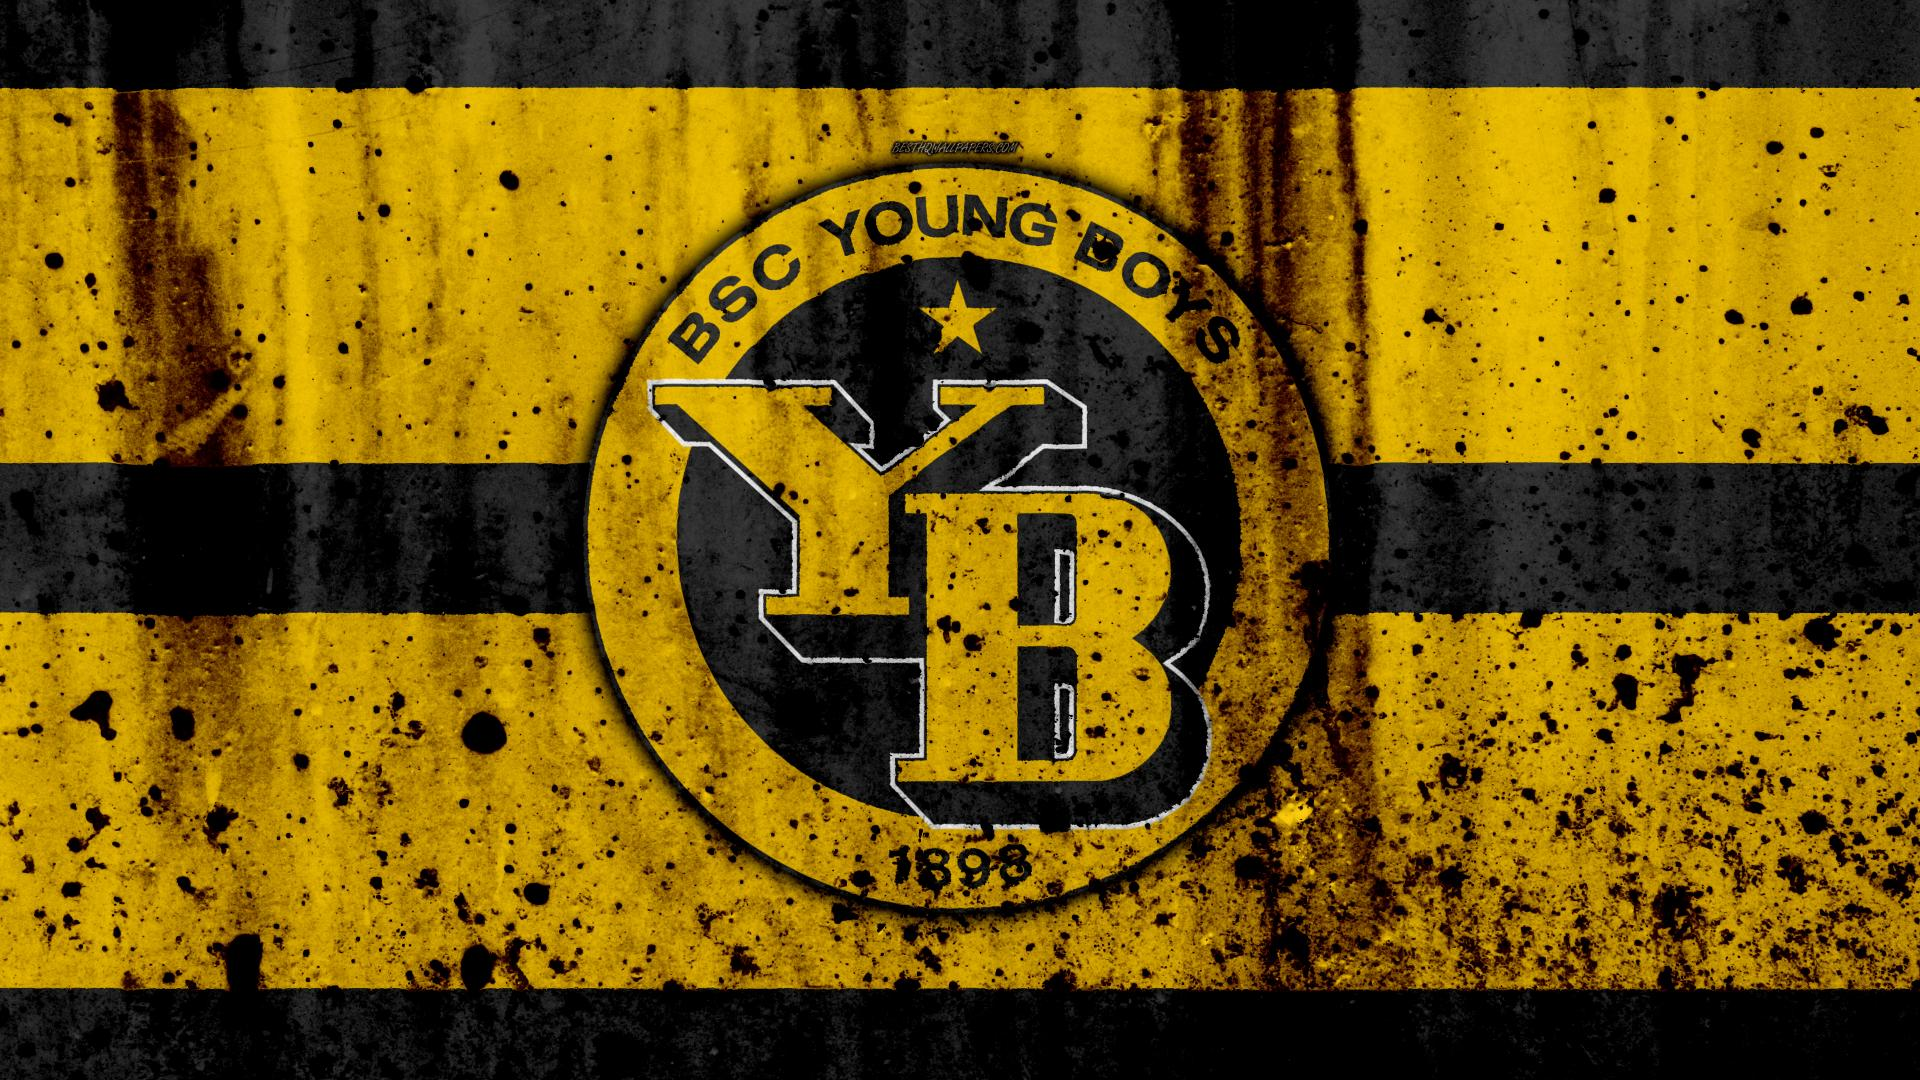 1920x1080 - BSC Young Boys Wallpapers 17